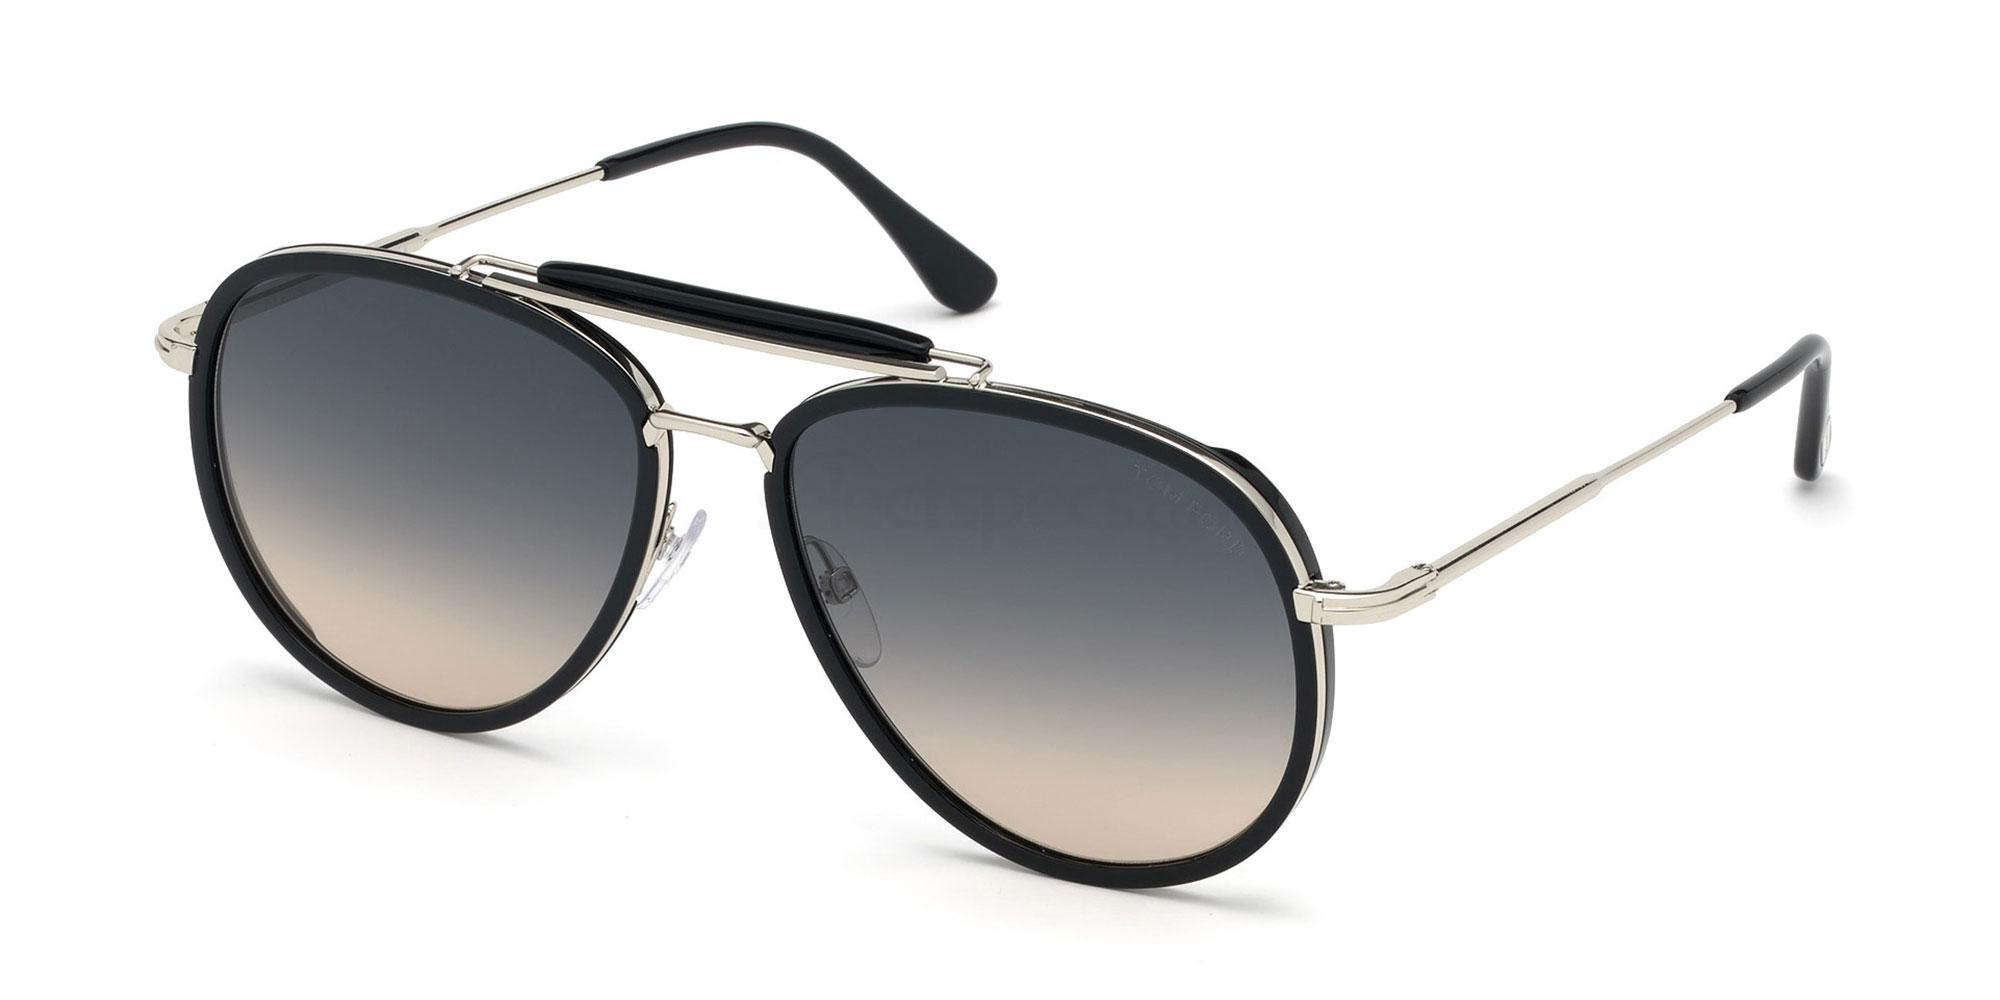 2020 luxury sunglasses gift guide for her tom ford